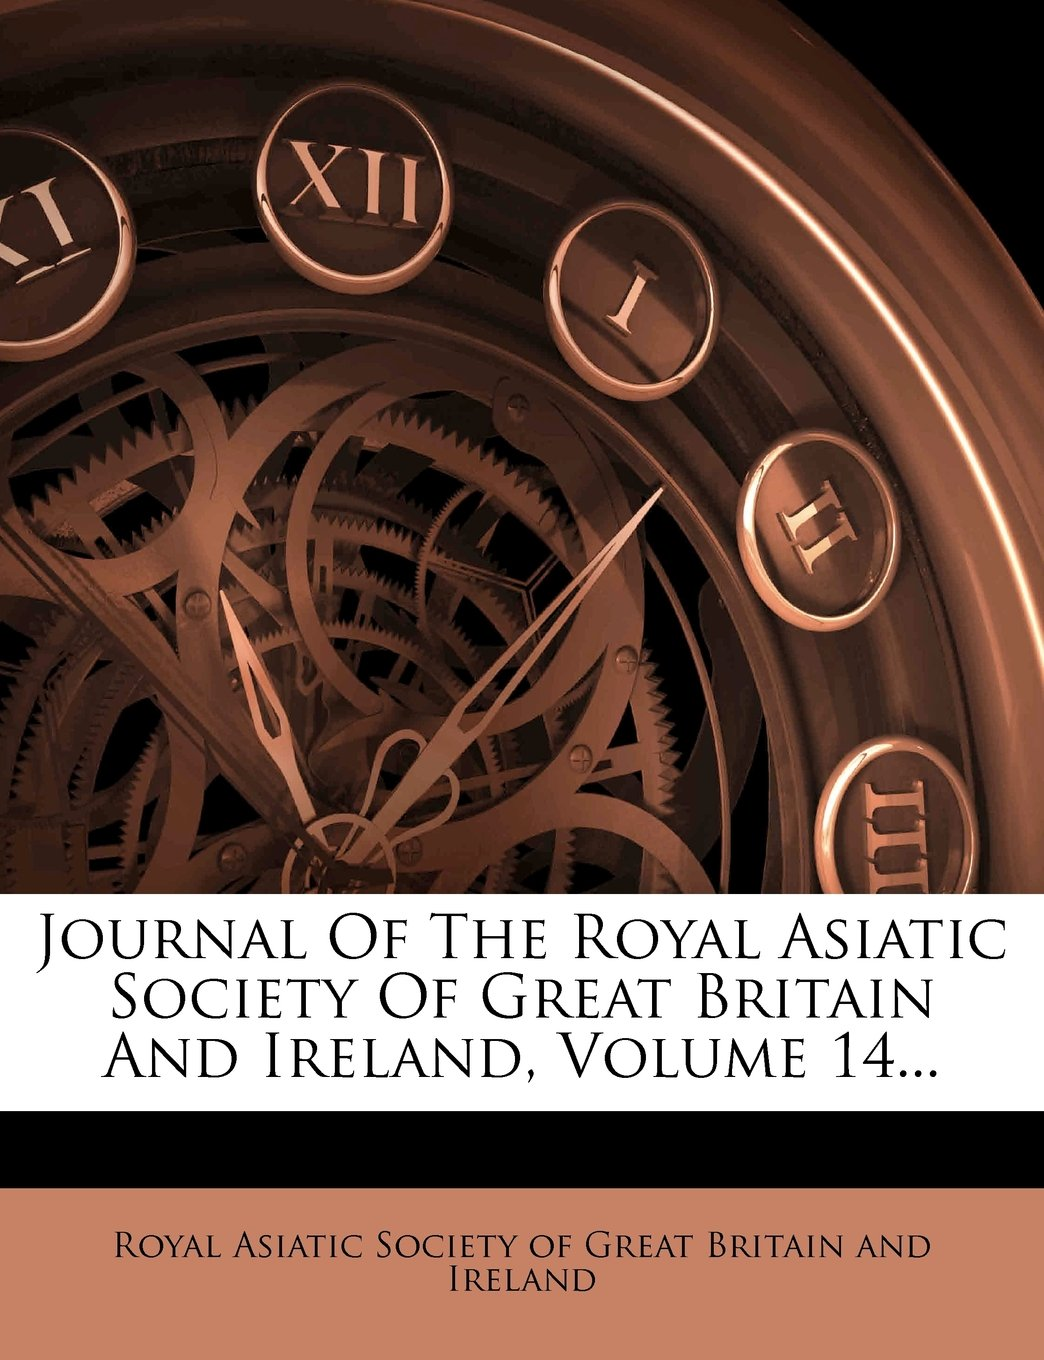 Journal Of The Royal Asiatic Society Of Great Britain And Ireland, Volume 14... pdf